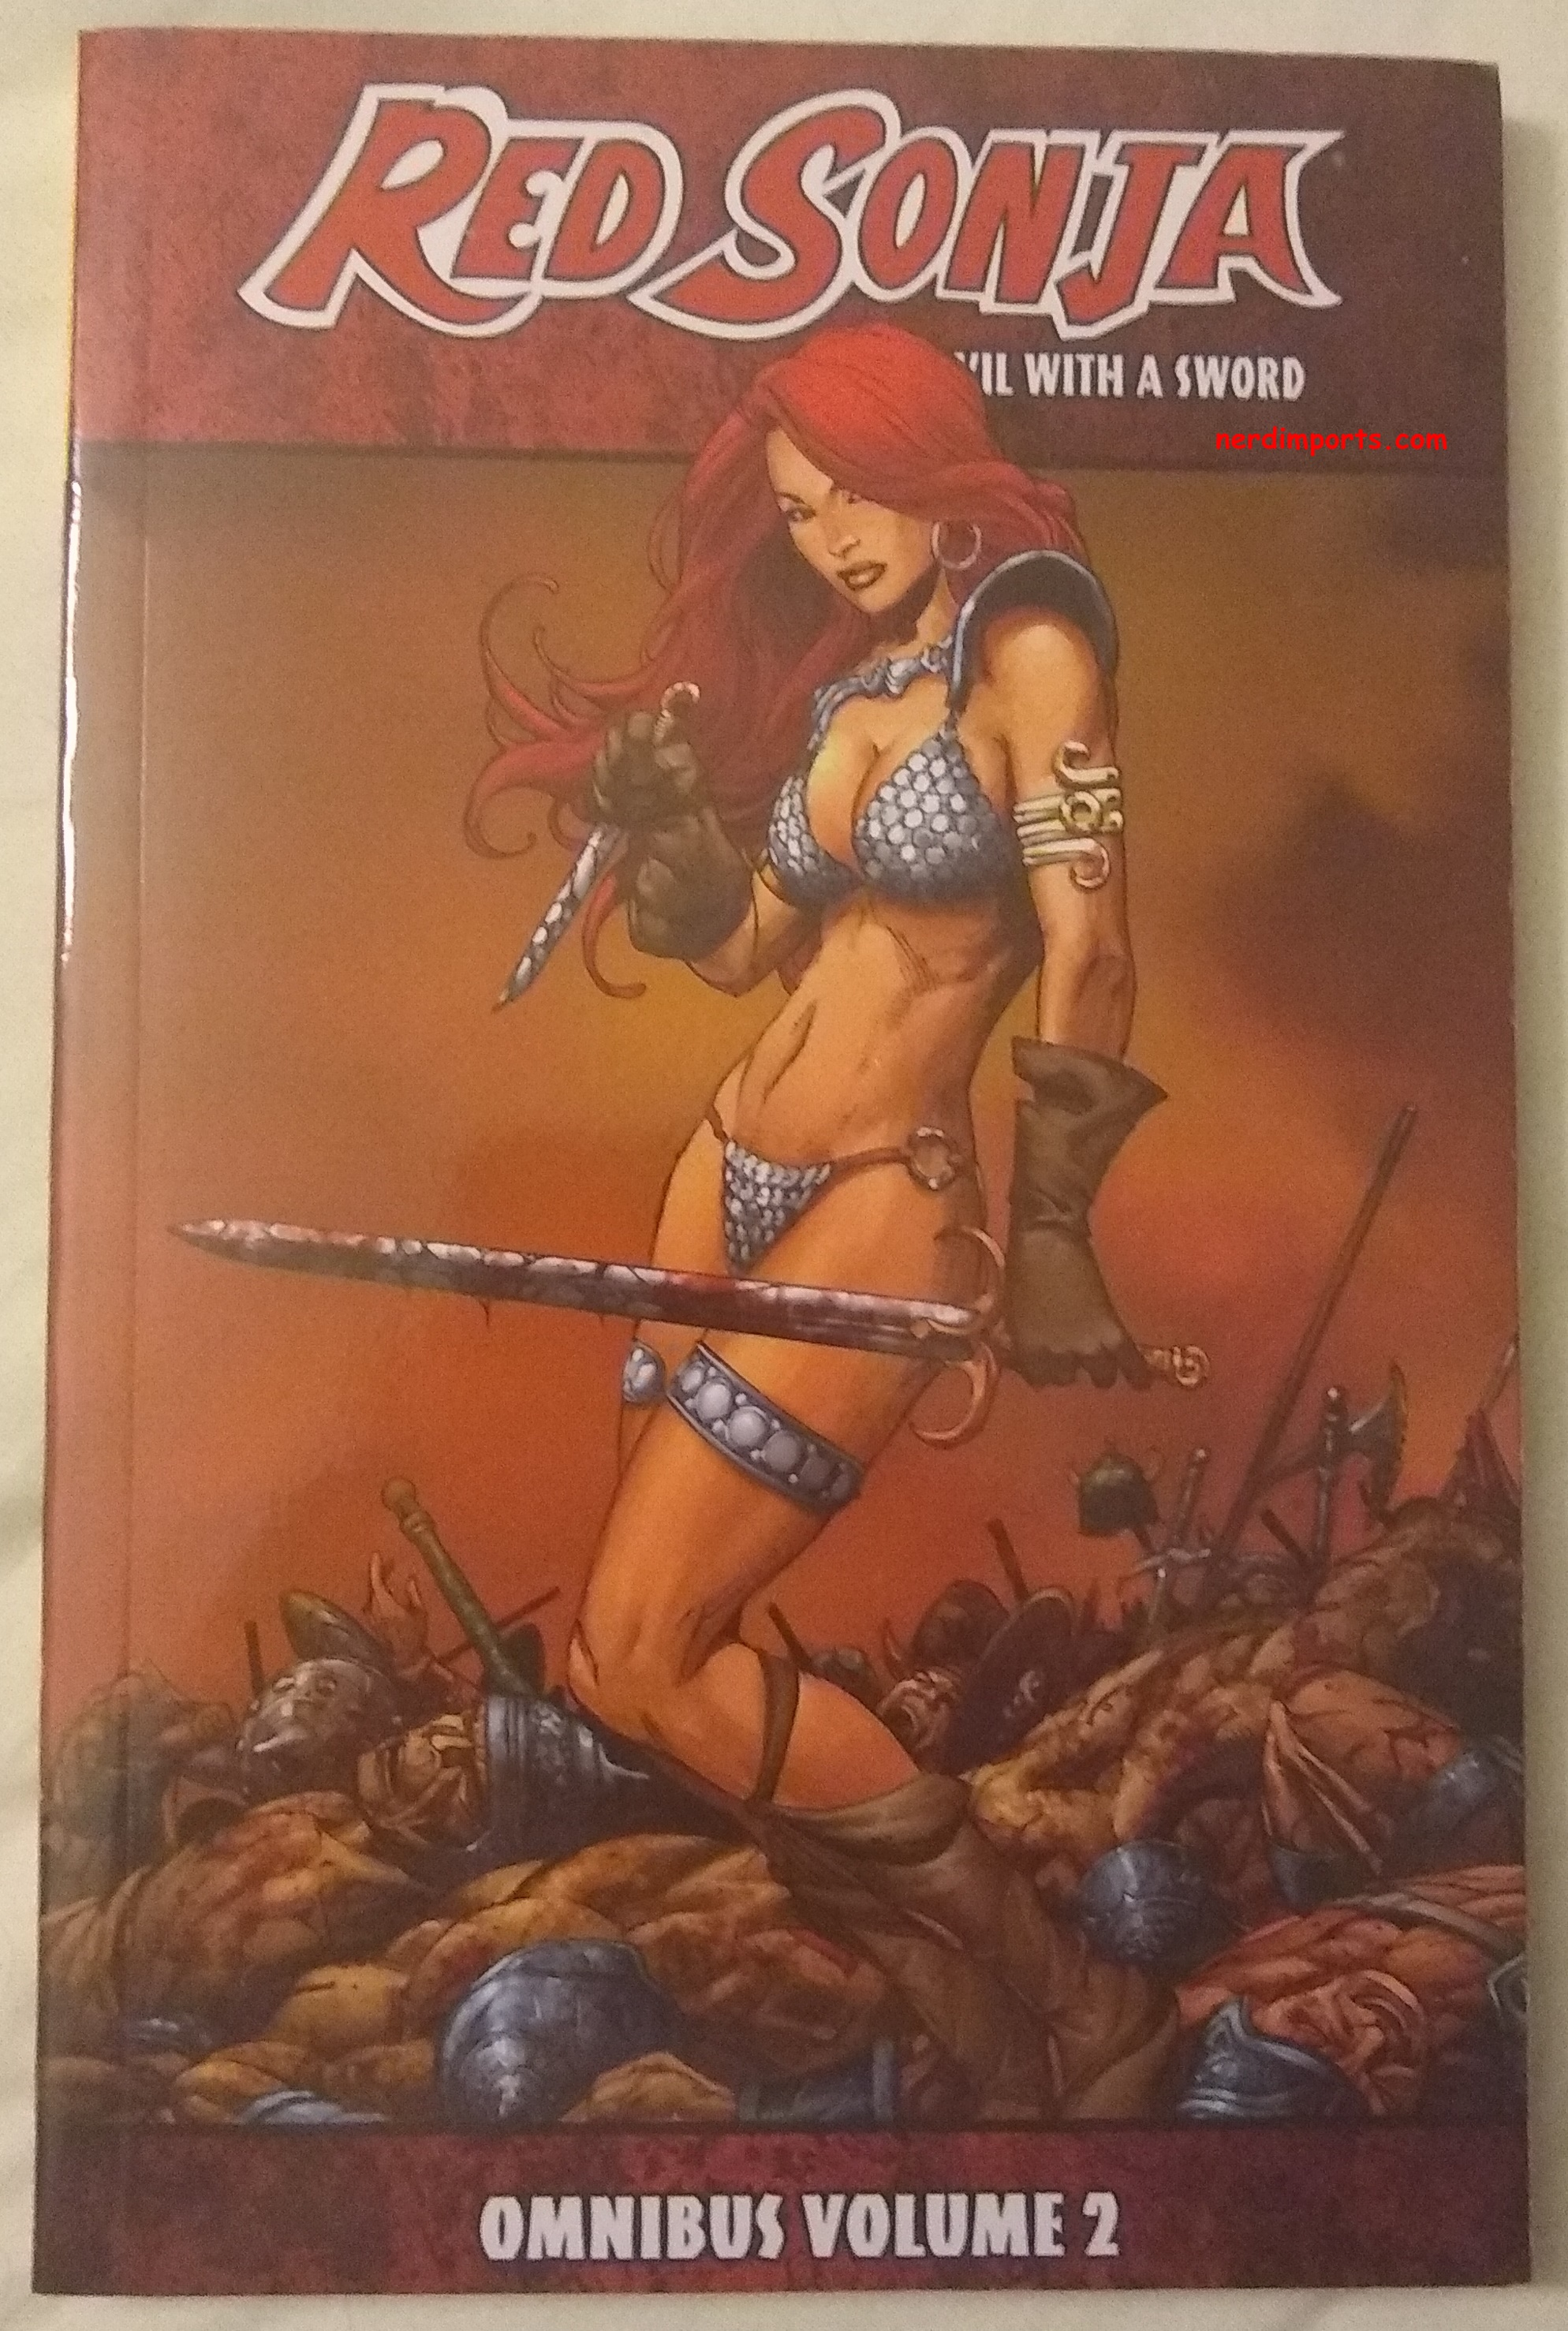 Red Sonja Omnibus Vol 2 Cover by NerdImports